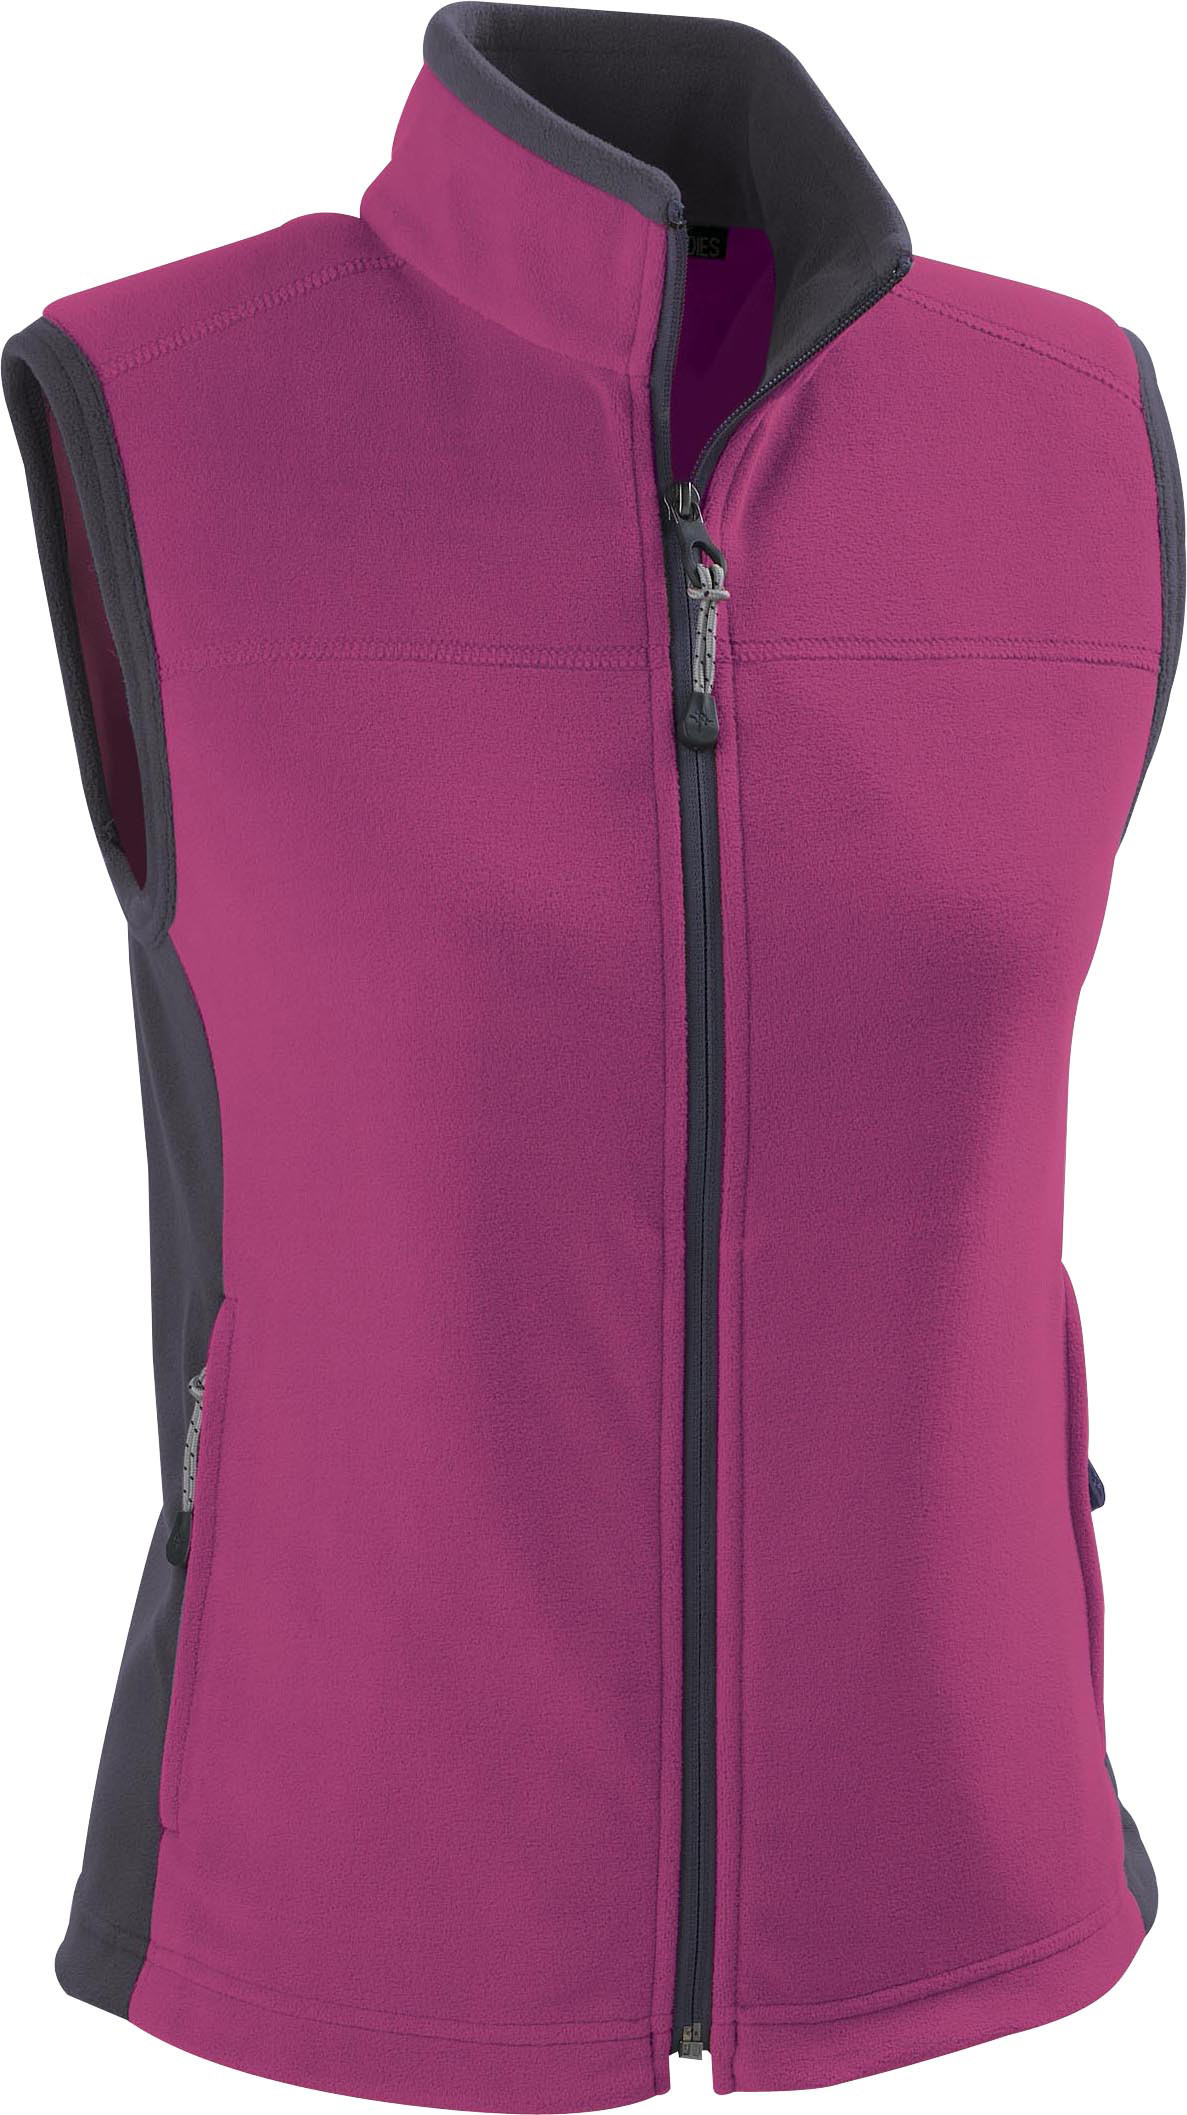 Ash City Microfleece 78041 - Ladies' Microfleece Vest